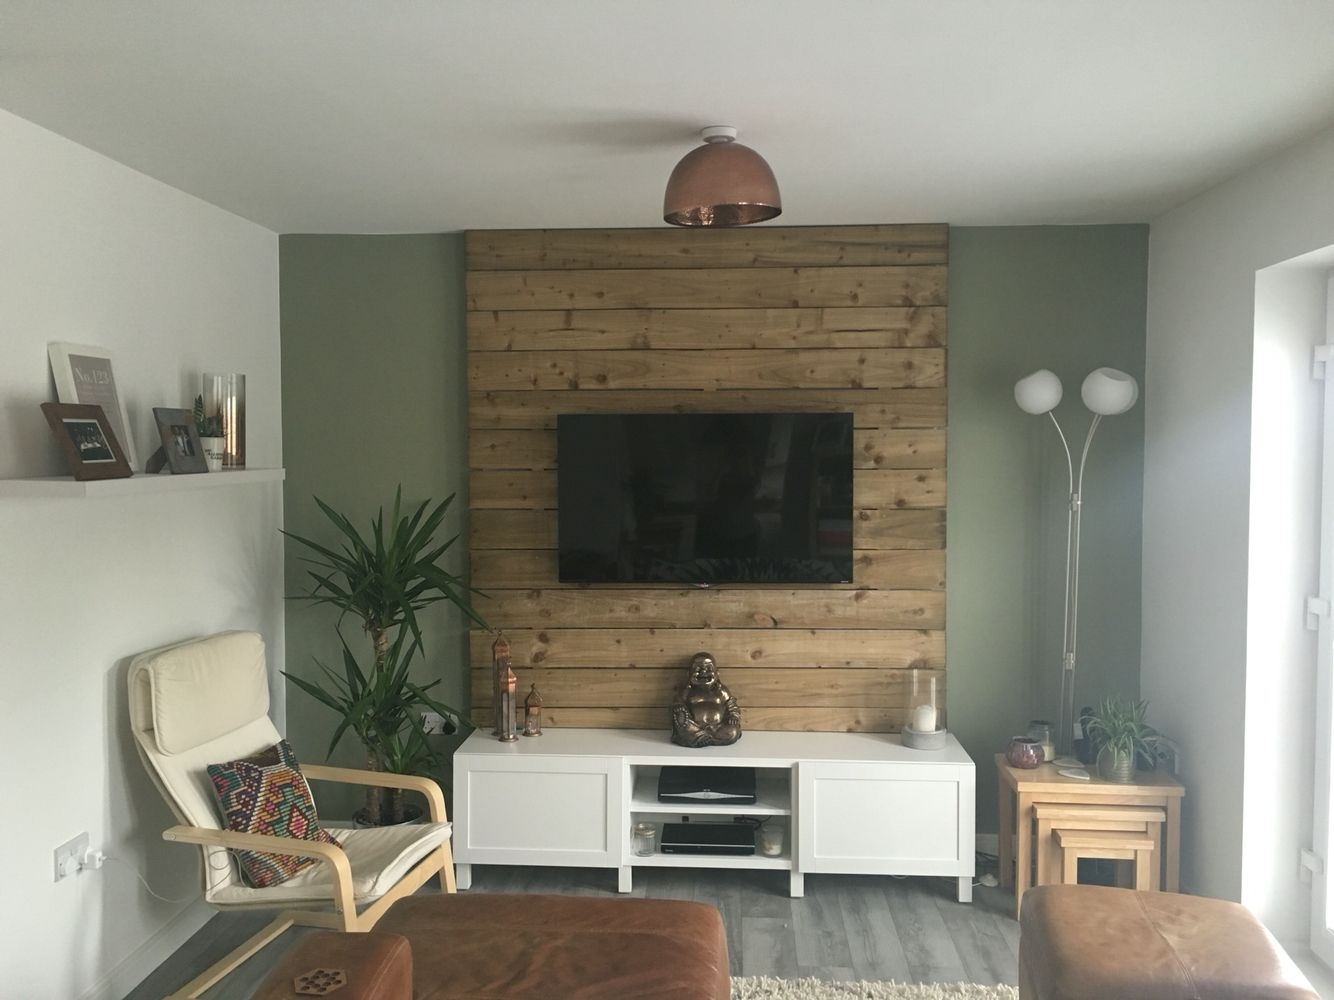 18 Chic And Modern Tv Wall Mount Ideas For Living Room | Tv Wall In 2017 Wall Accents With Pallets (View 11 of 15)